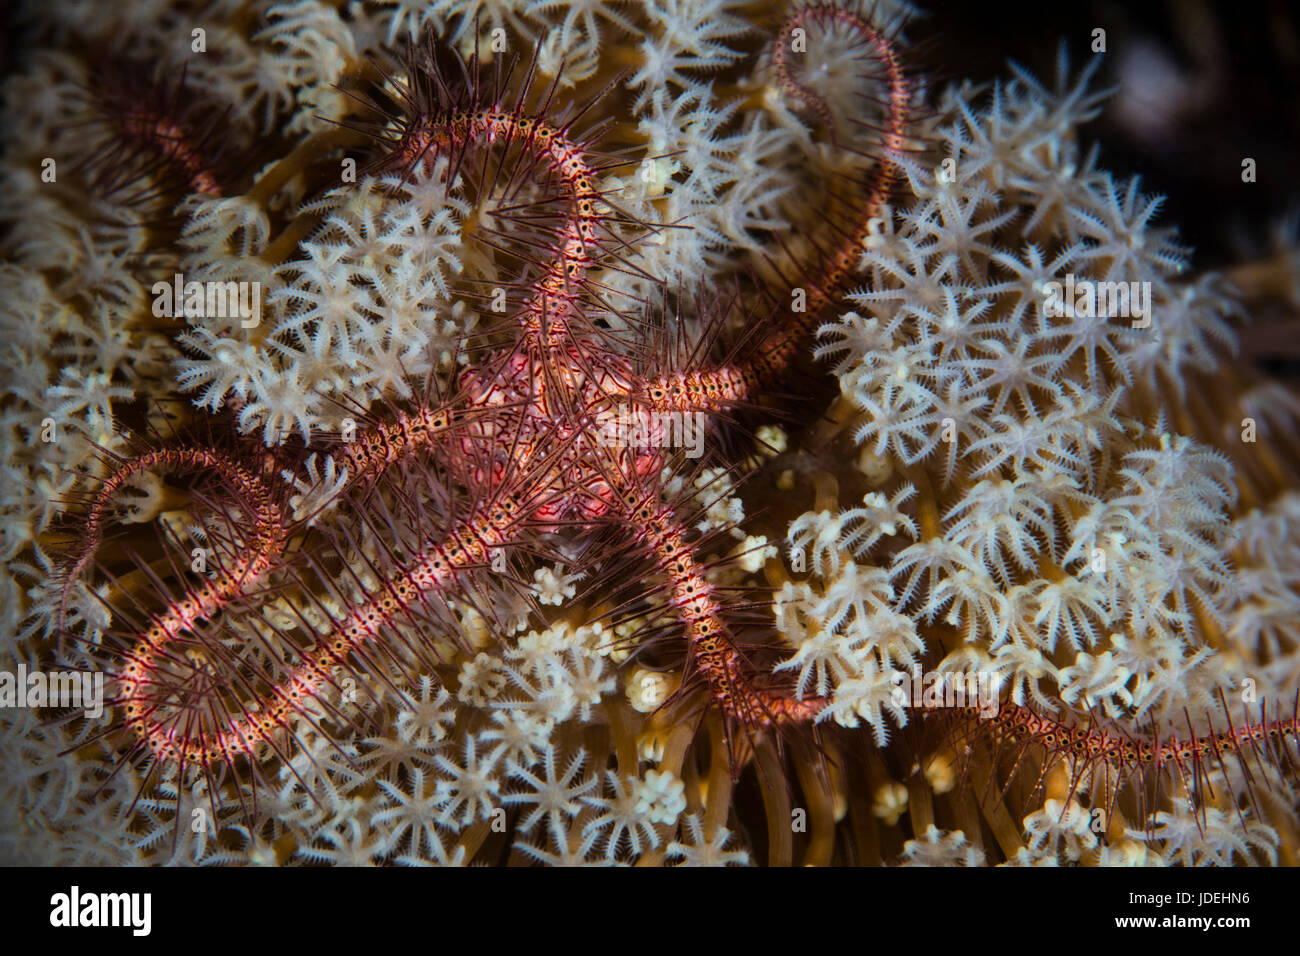 Brittle Starfish, Ophiotrix, Komodo National Park, Indonesia - Stock Image